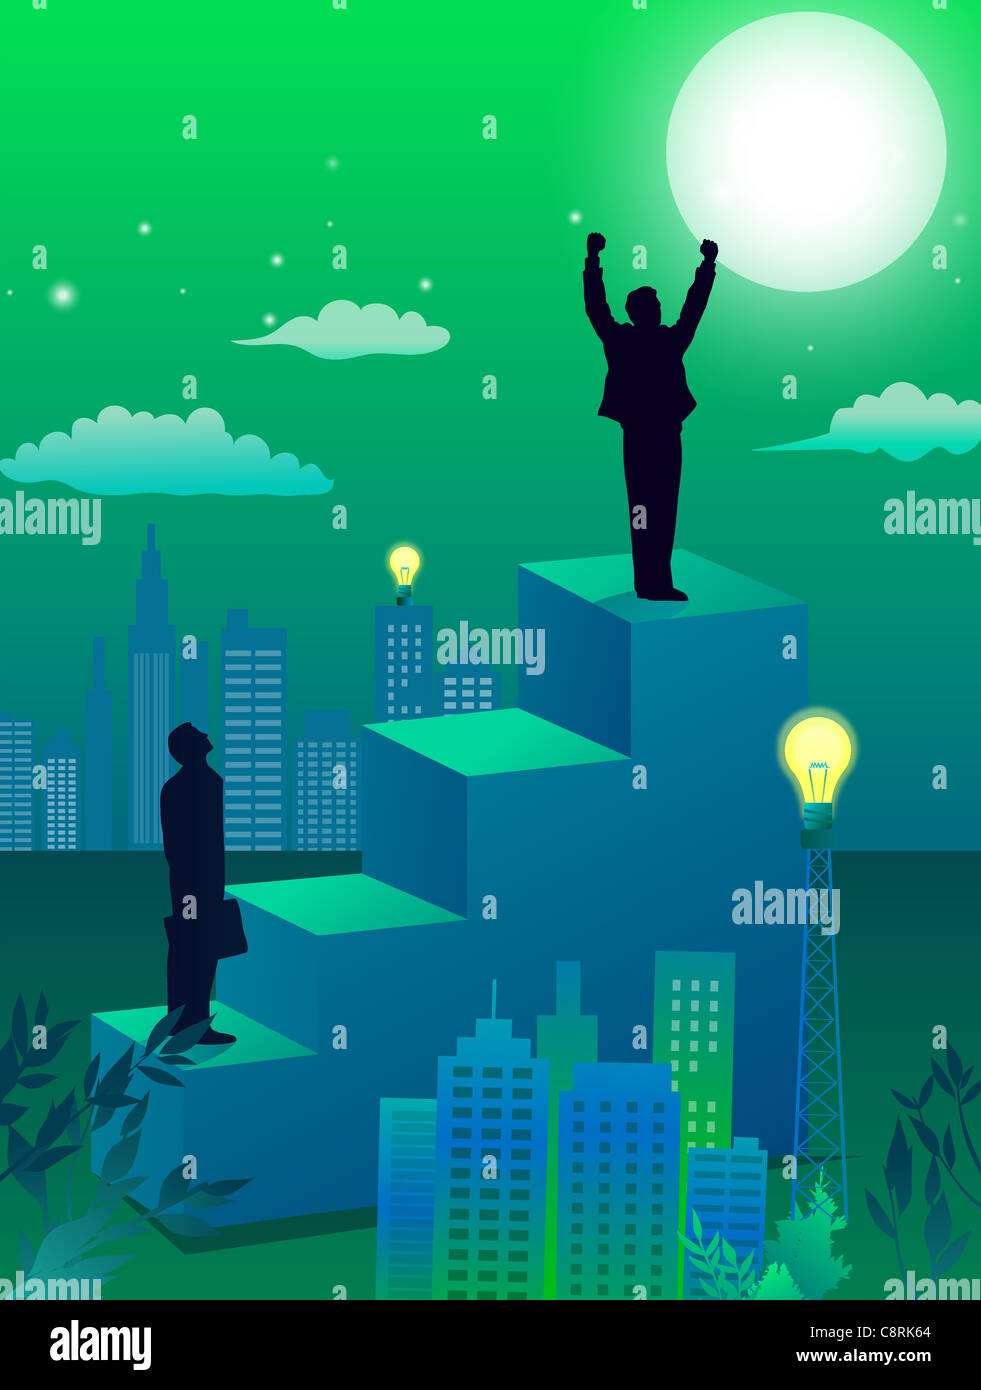 Illustration of city and two men standing high on steps - Stock Image